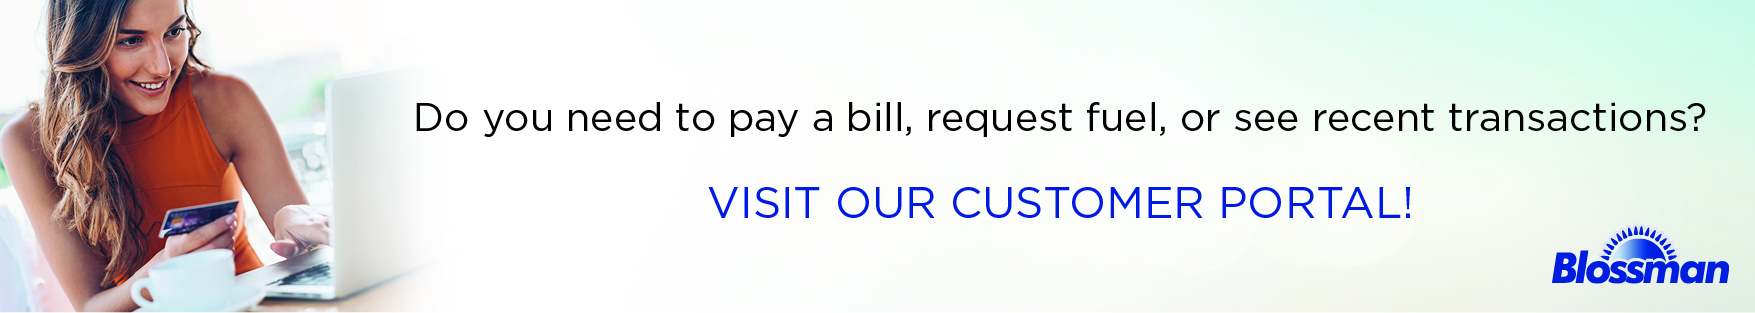 Customer Account Login - Online Bill Pay - Order Gas